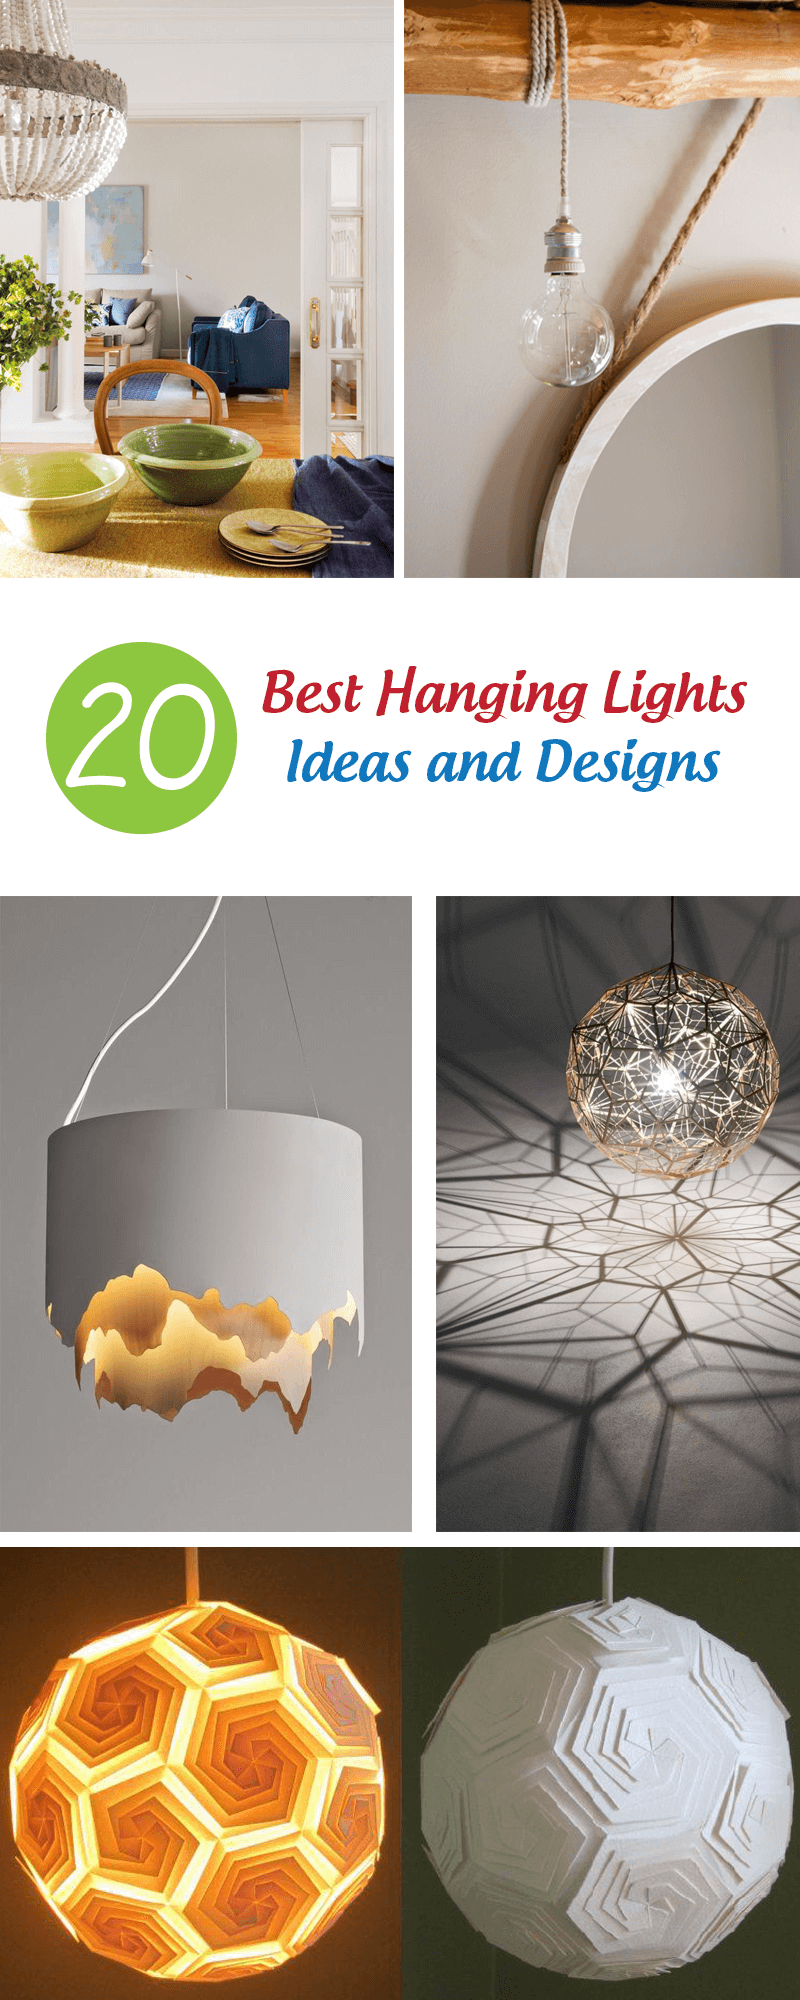 best hanging lights ideas and designs